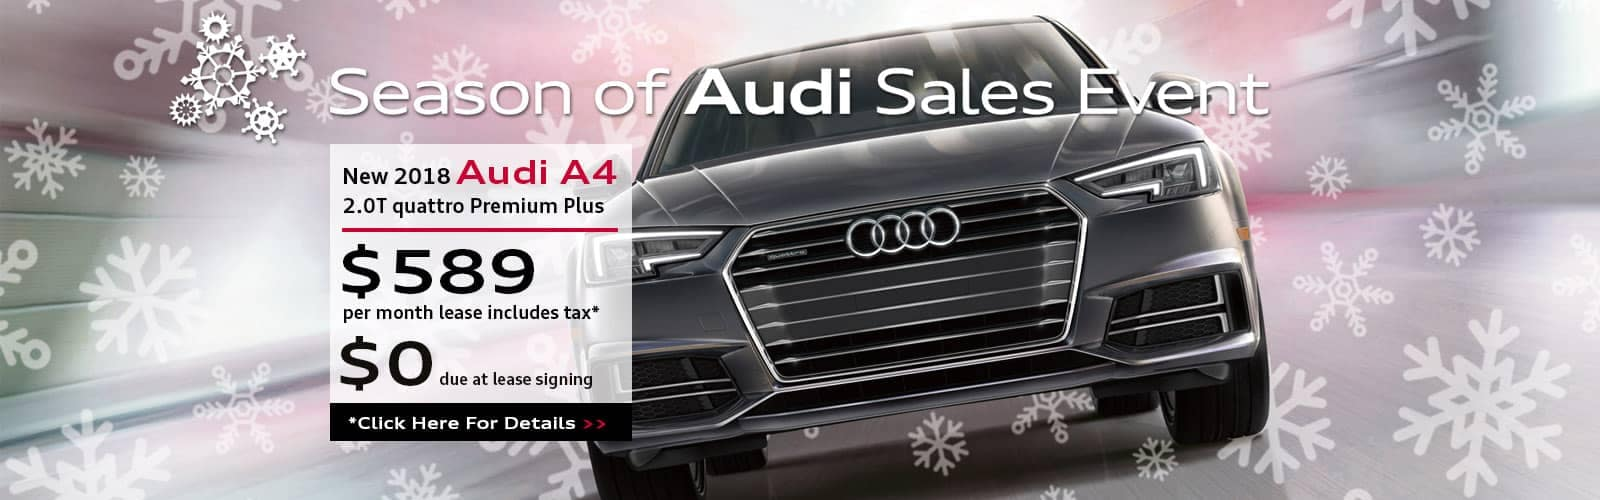 A4 Lease Specials